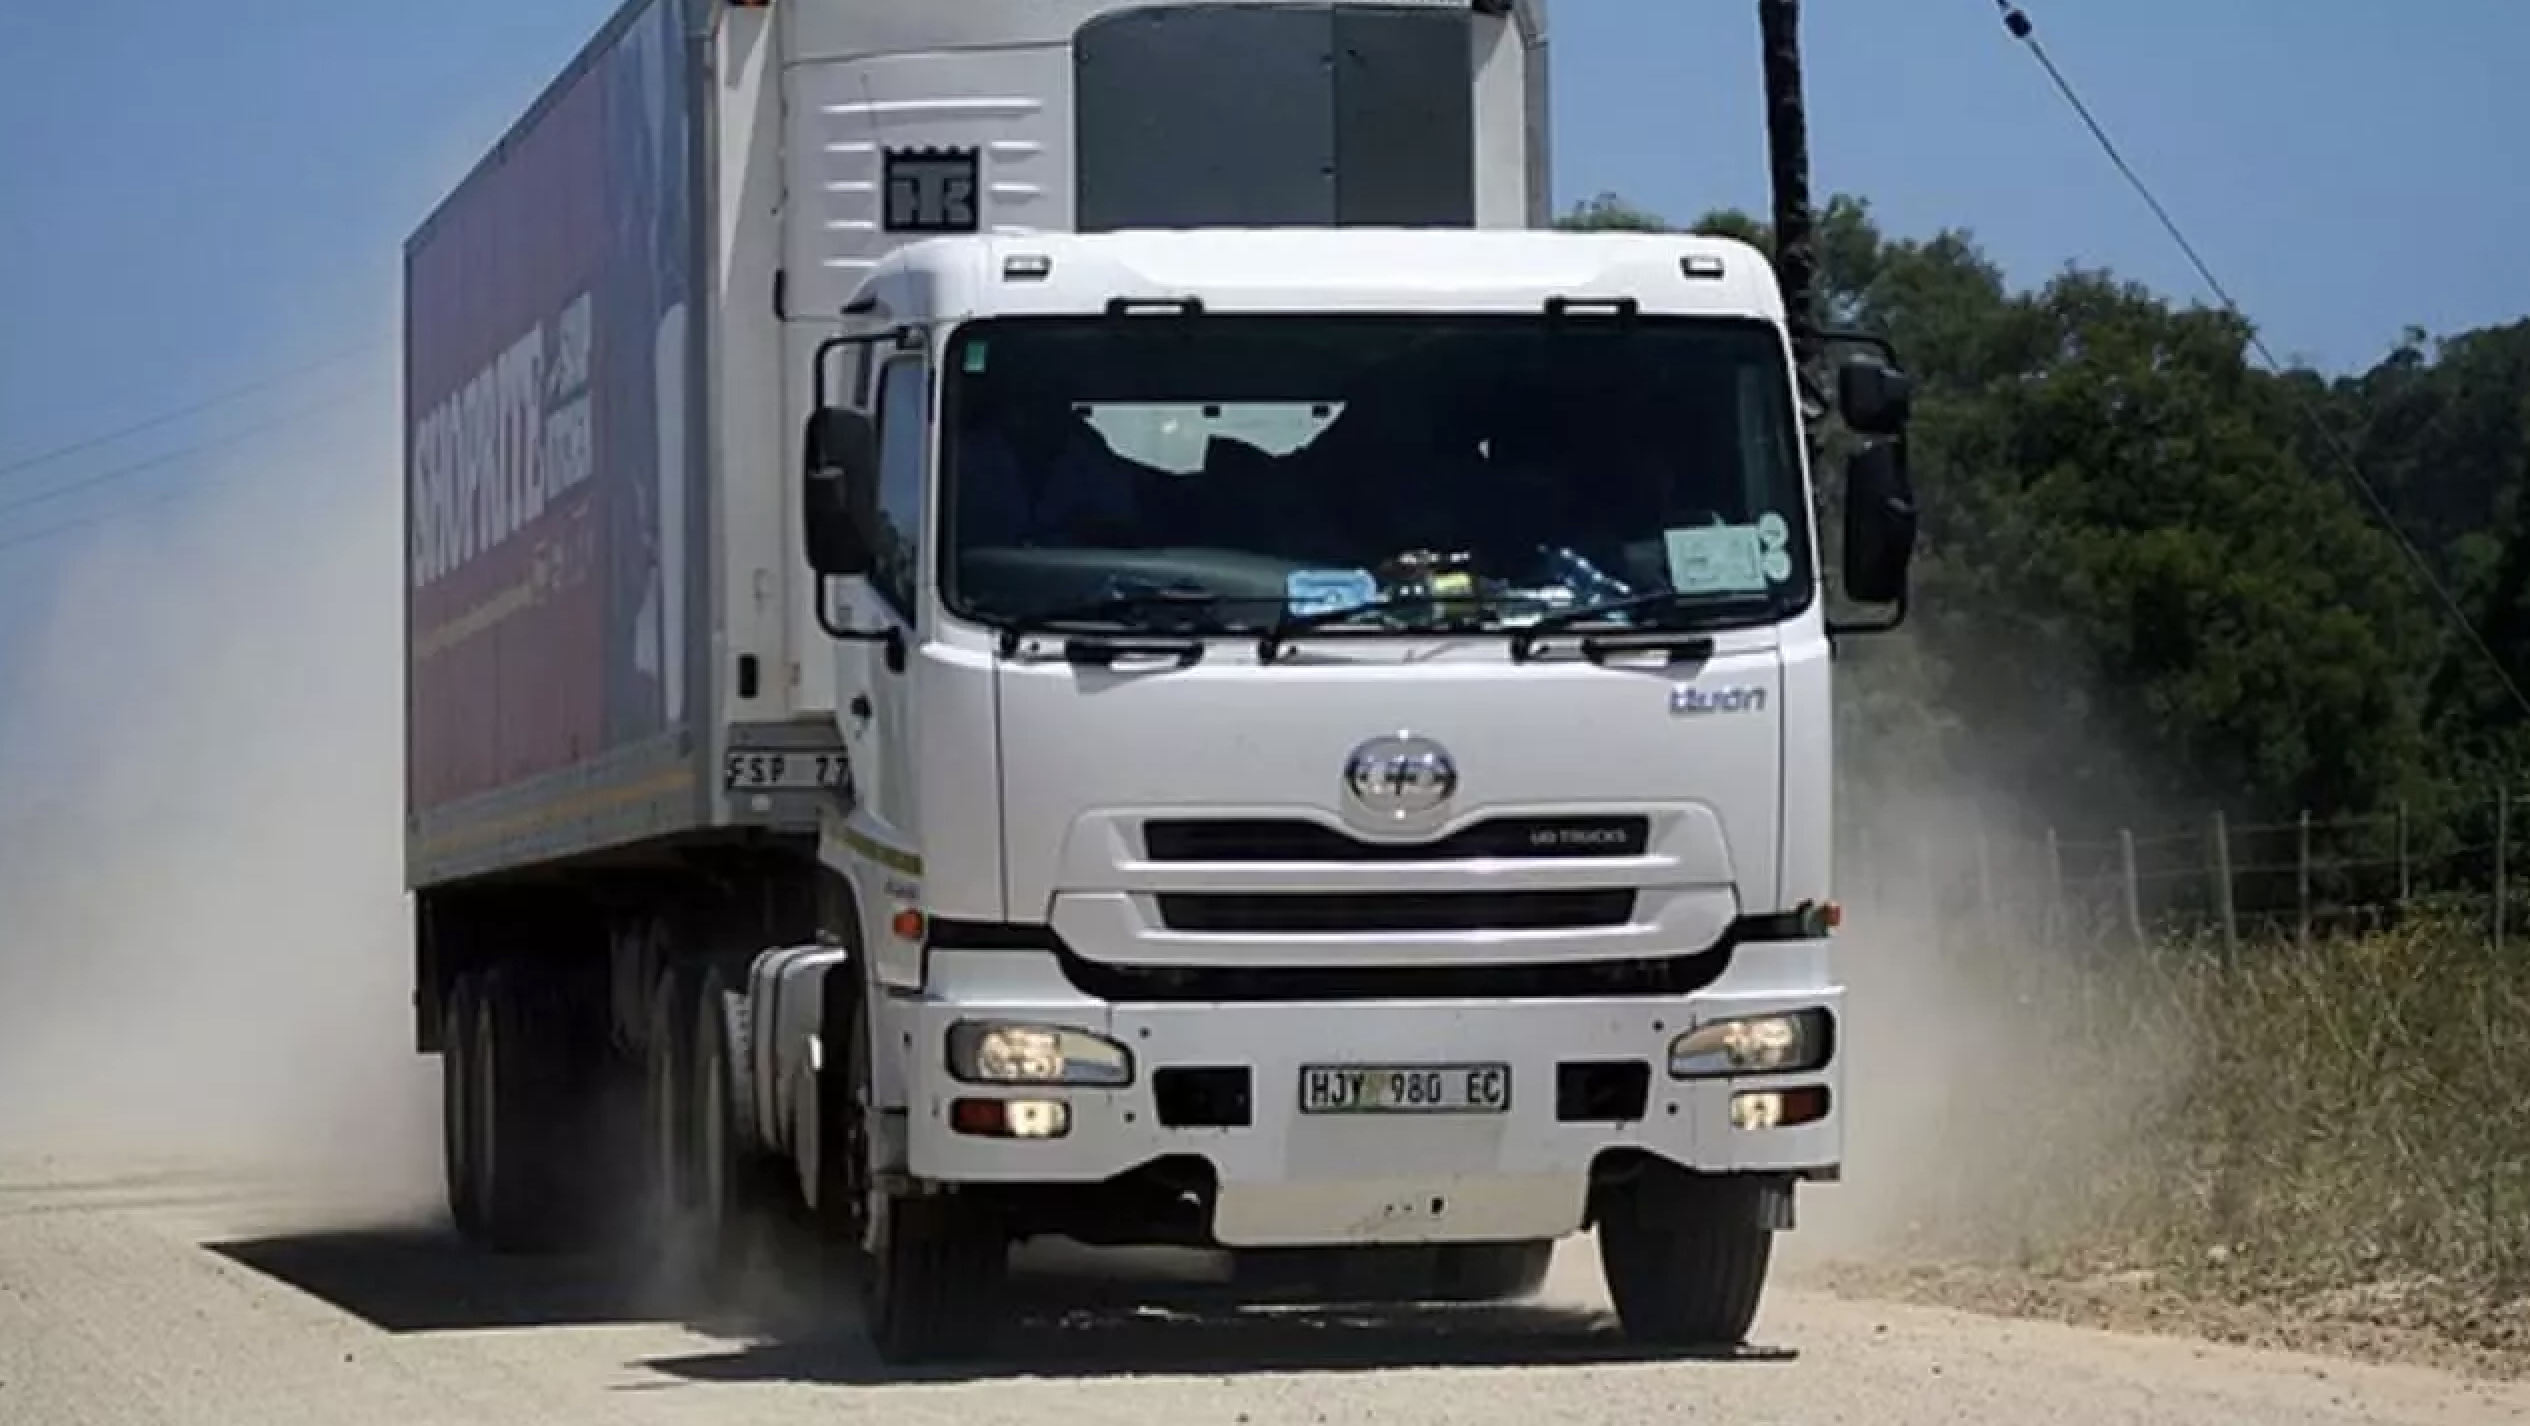 Keys 2021: The Situation of Freight Transport in South Africa